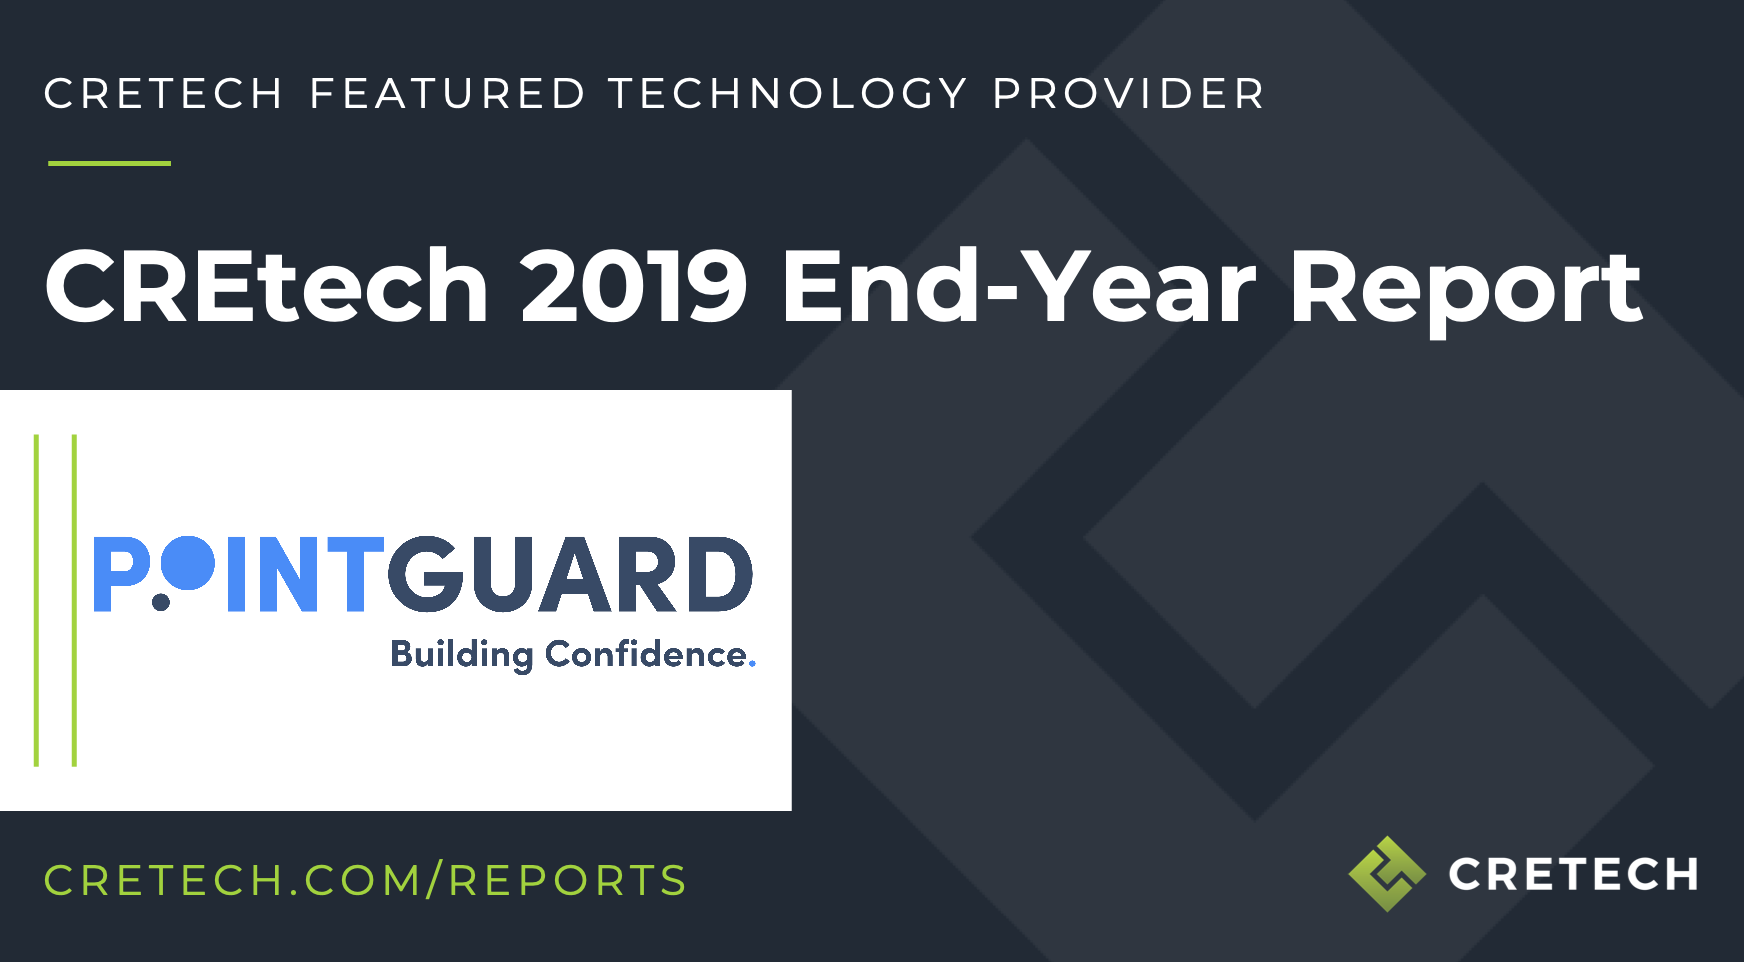 PointGuard Highlighted as Innovative Technology Provider in 2019 CREtech End-Year Report